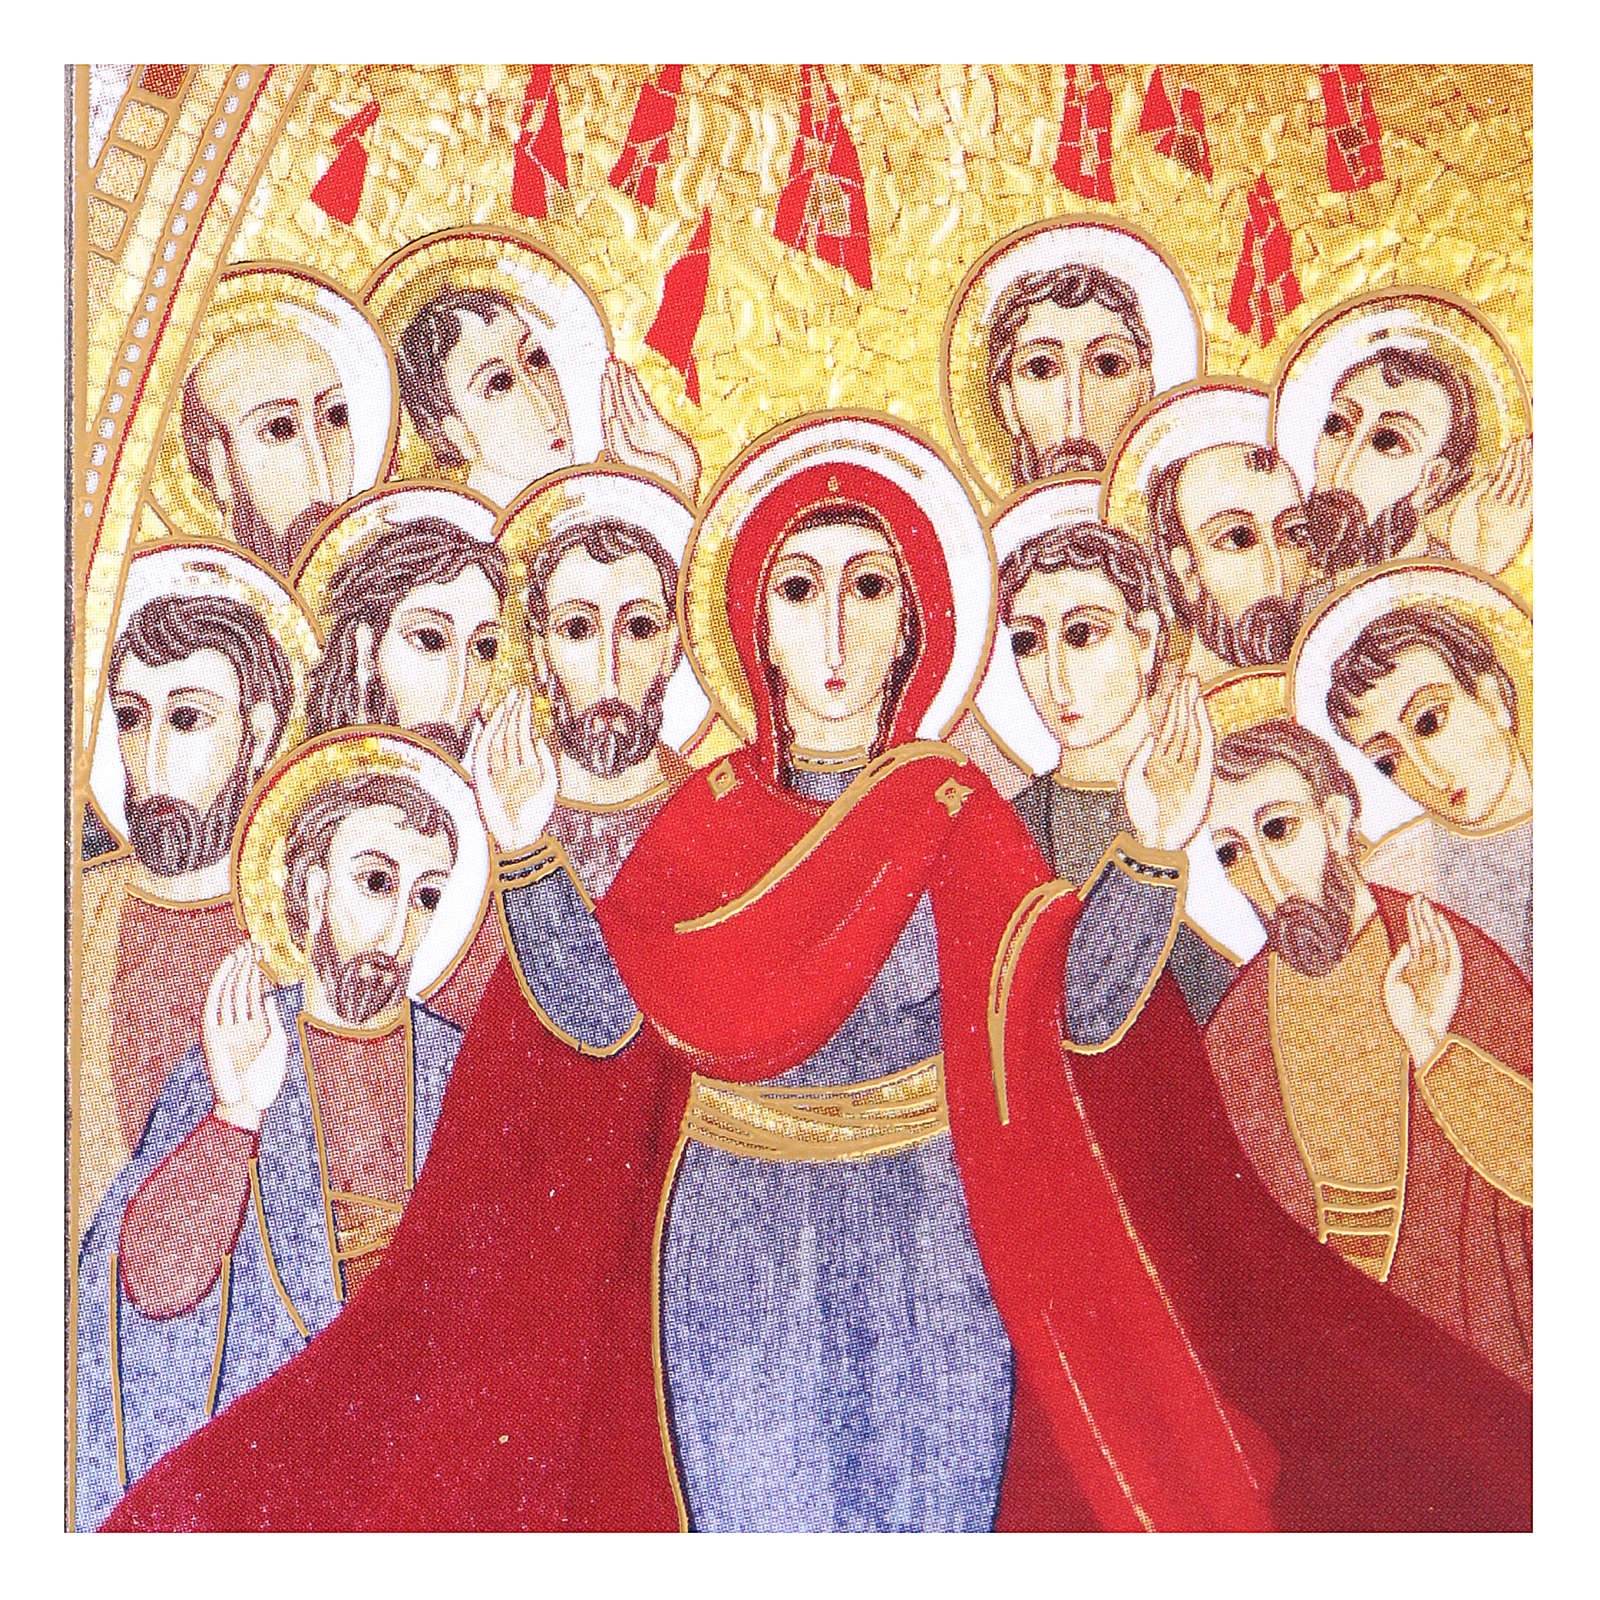 Pentecost picture with mosaic print by Rupnik 5x10 cm 3